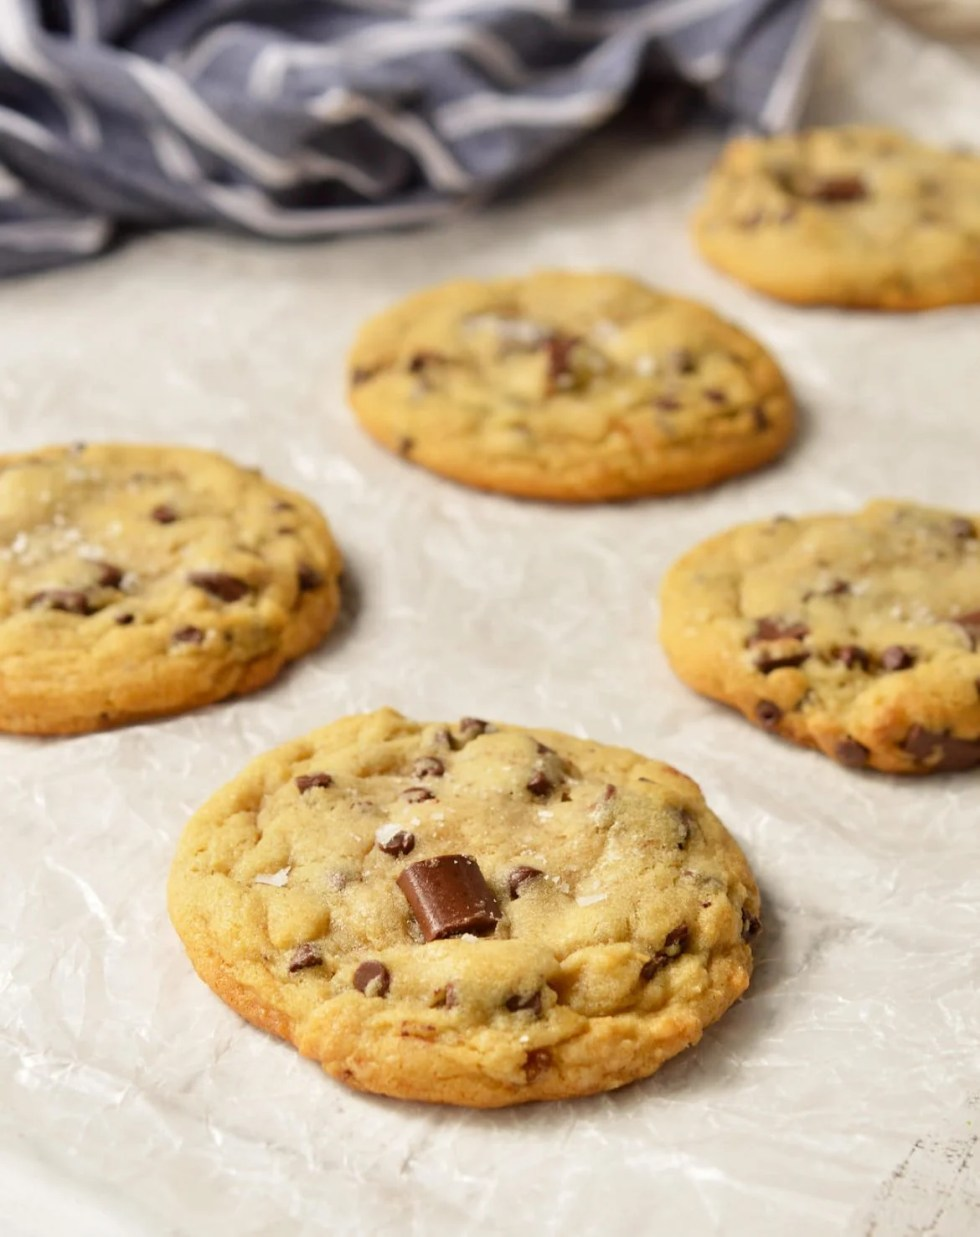 TheseSoft Chocolate Chip Cookies are my family's favorite treat! A special secret ingredient gives them a unique flavor and they are loaded with two types of chocolate chips! Also, this is a High AltitudeChocolate Chip Cookies Recipe. Soft, chewy, super-chocolaty and finished with a sprinkle of sea salt. #chocolatechipcookies #chocolatechipcookierecipes